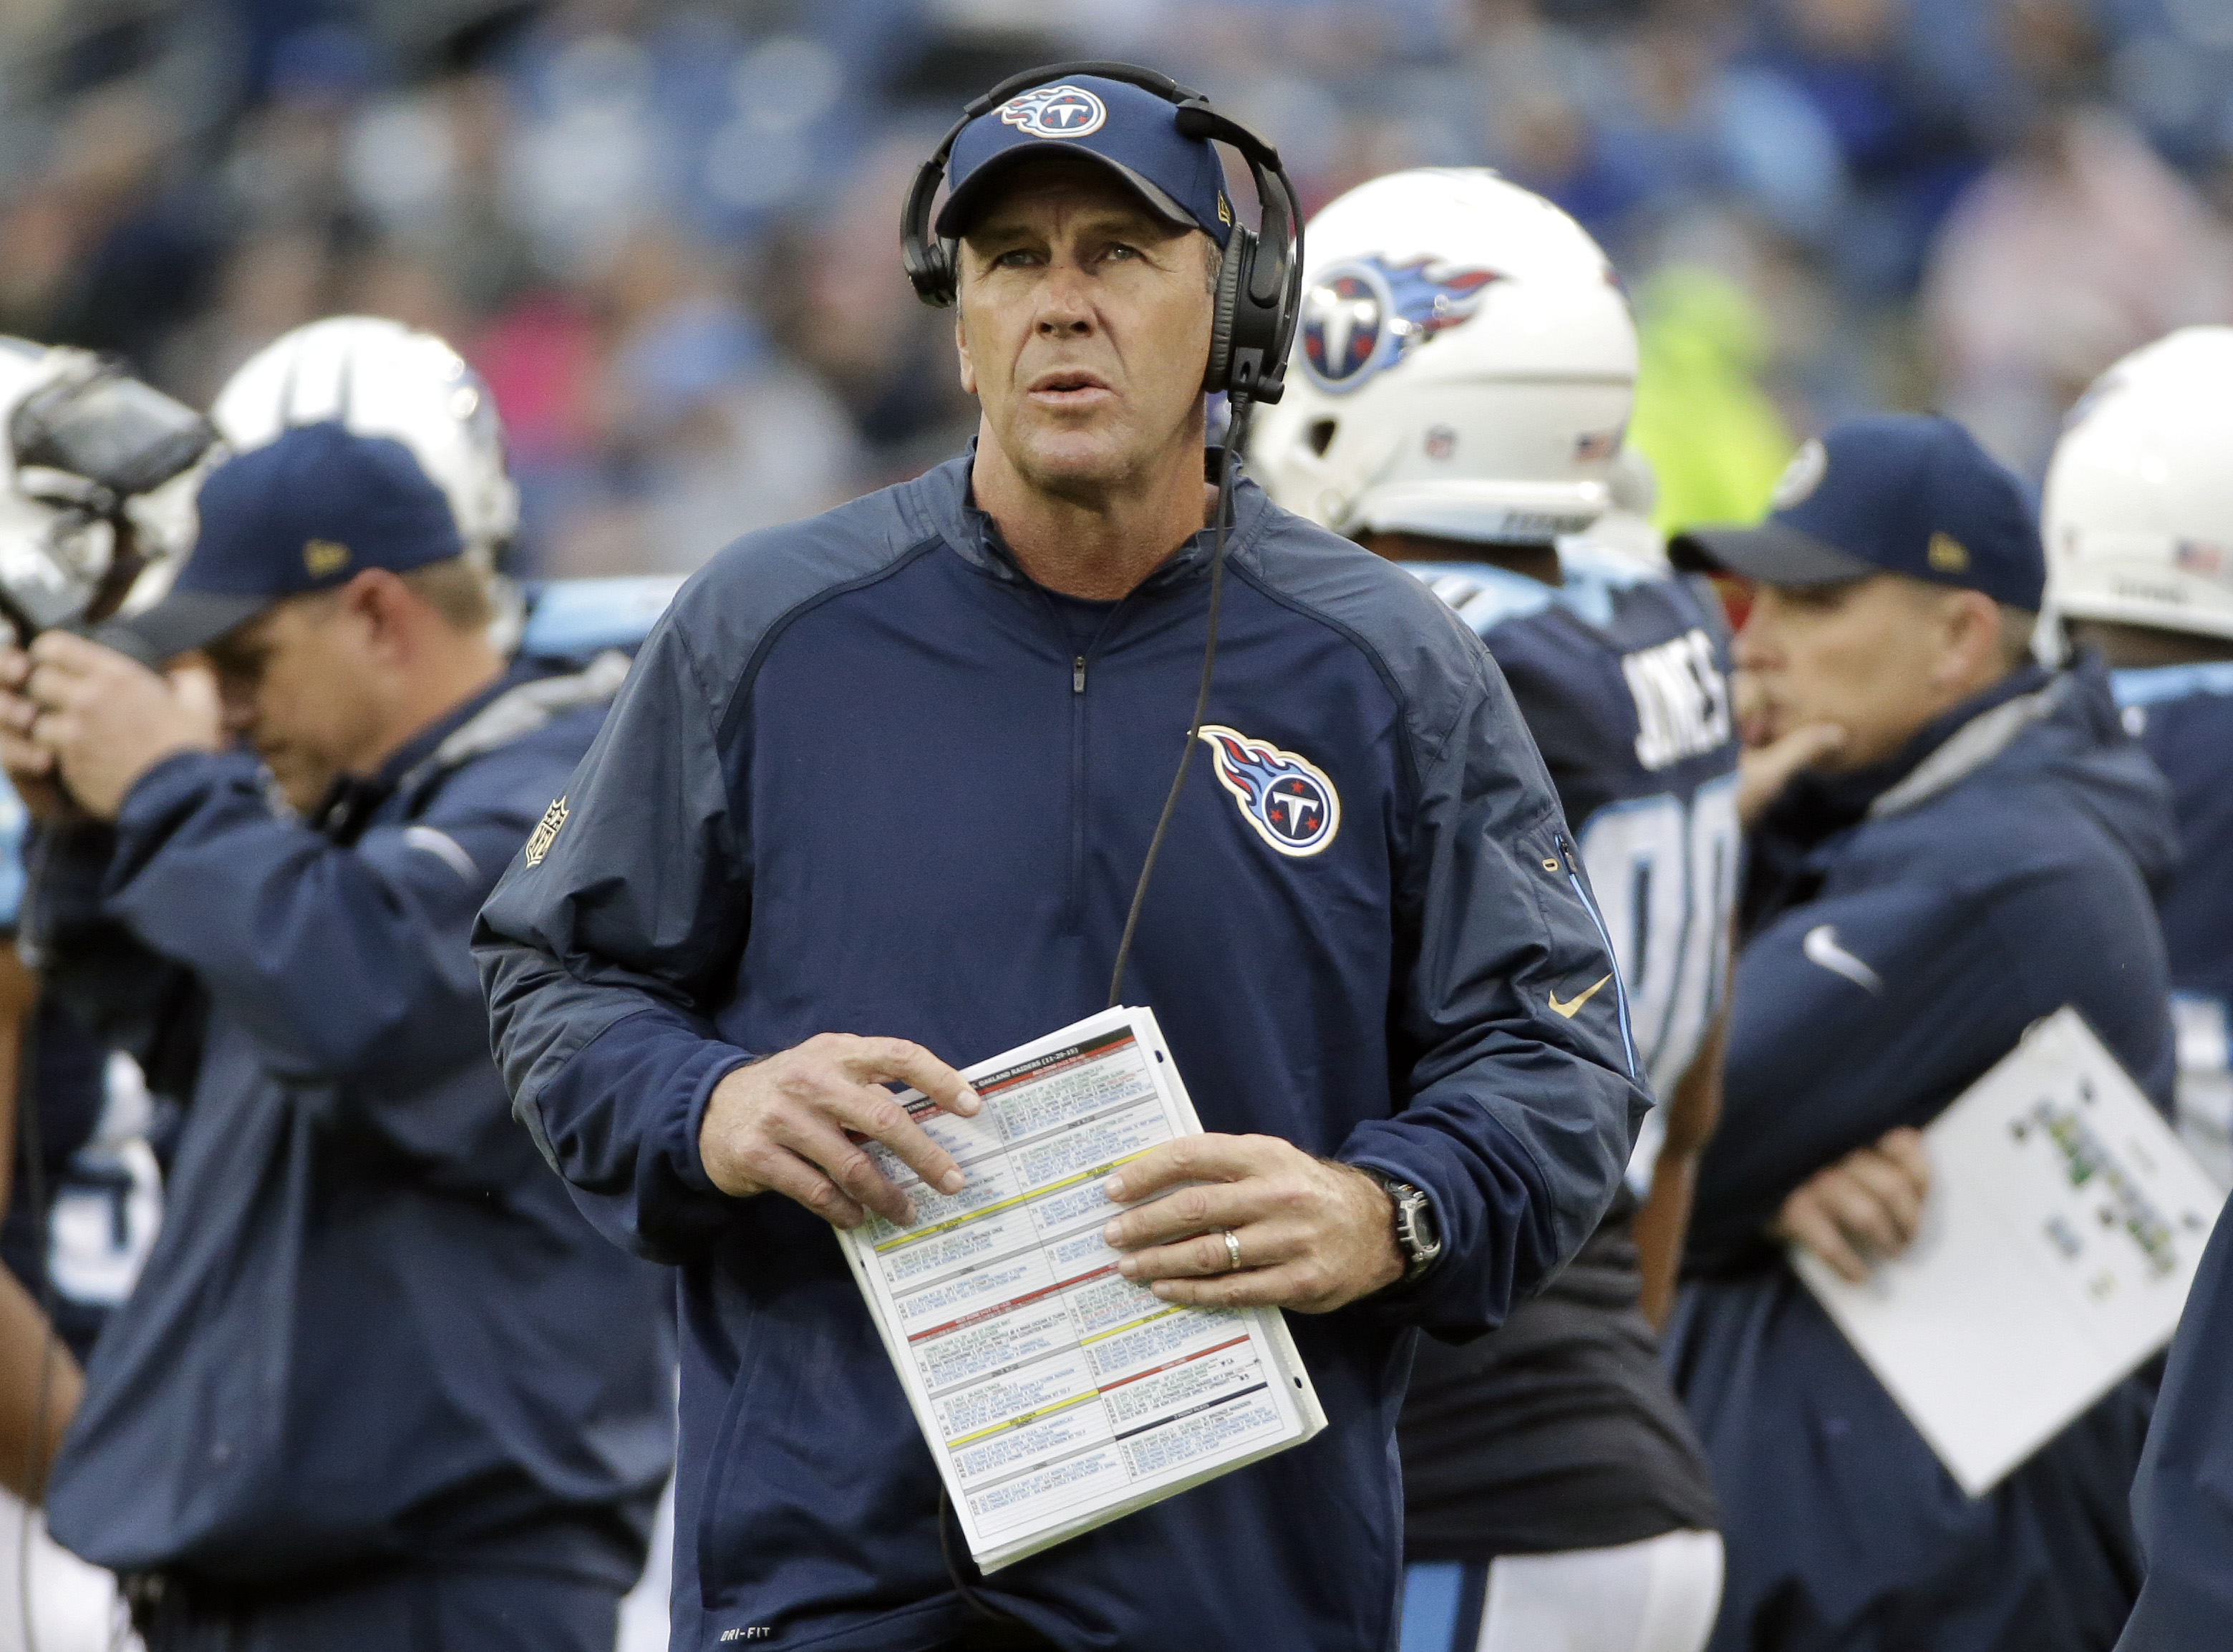 FILE - In this Sunday, Nov. 29, 2015 file photo, Tennessee Titans interim head coach Mike Mularkey watches from the scoreboard in the first half of an NFL football game against the Oakland Raiders in Nashville, Tenn. Mularkey has two games left as interim